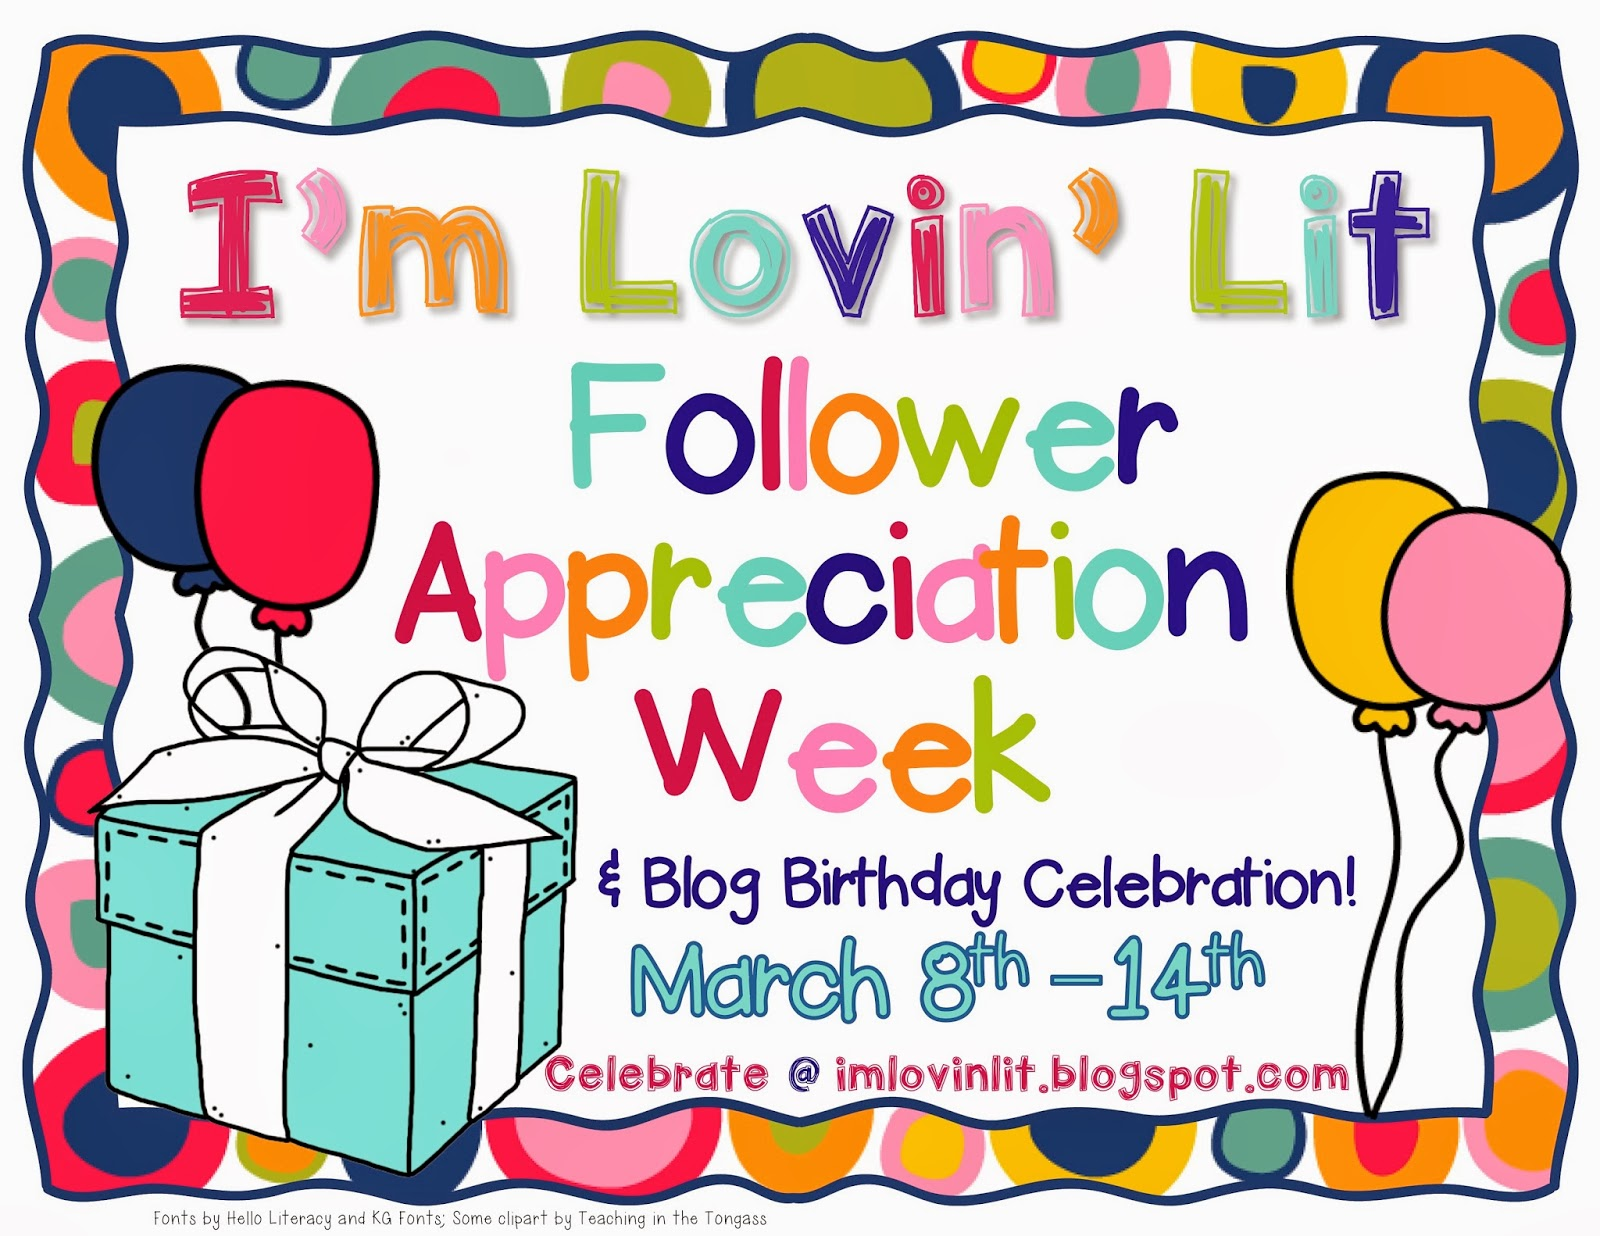 Day 5: Follower Appreciation Week